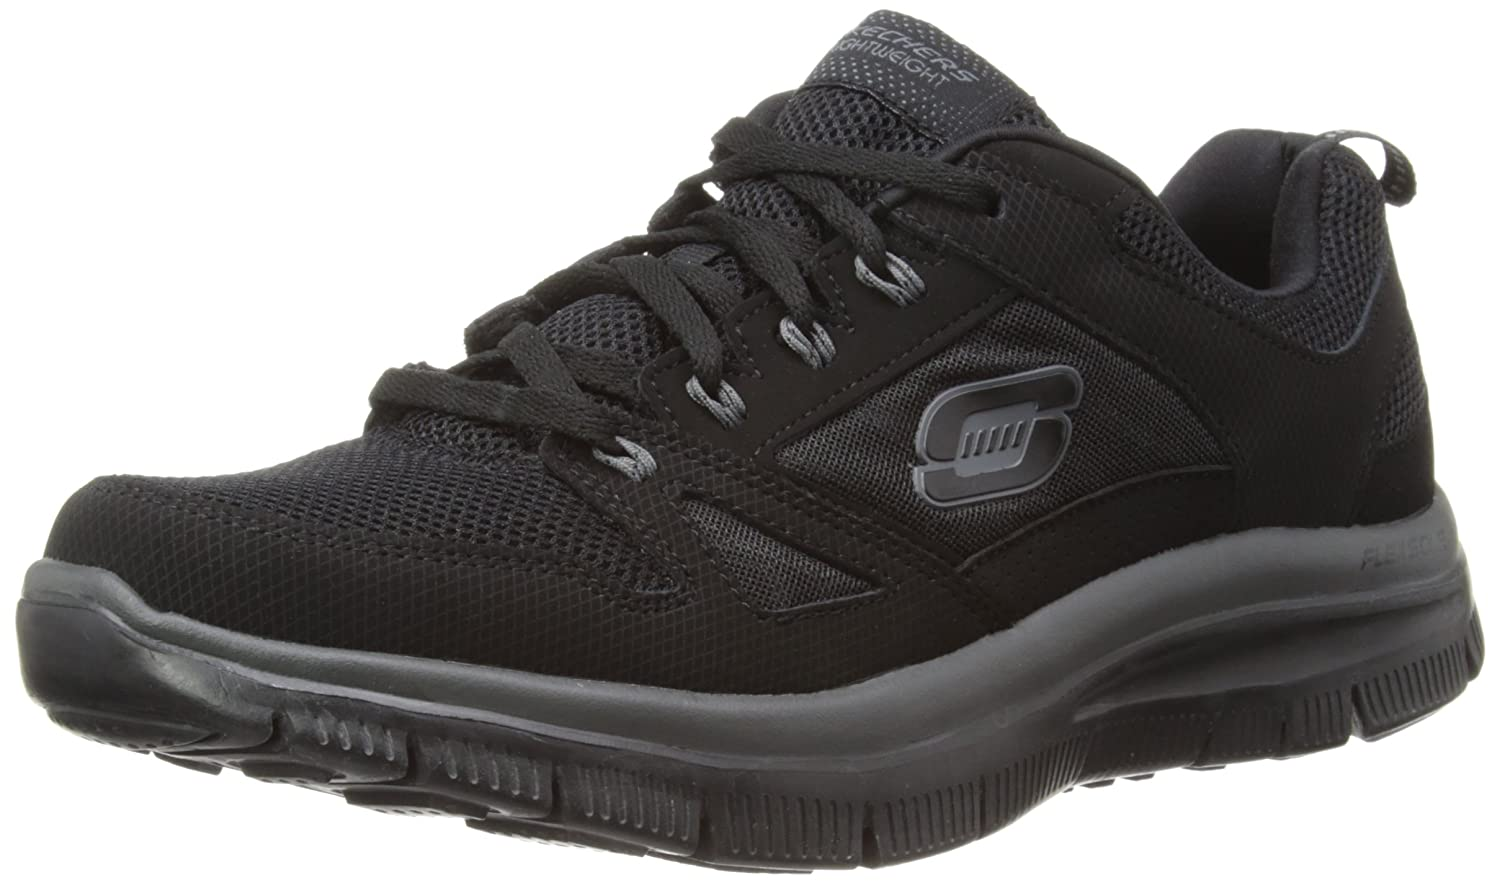 Skechers Sport Men's Flex Advantage Memory Foam Training Shoe B00I38QZPK 8.5 D(M) US|Black